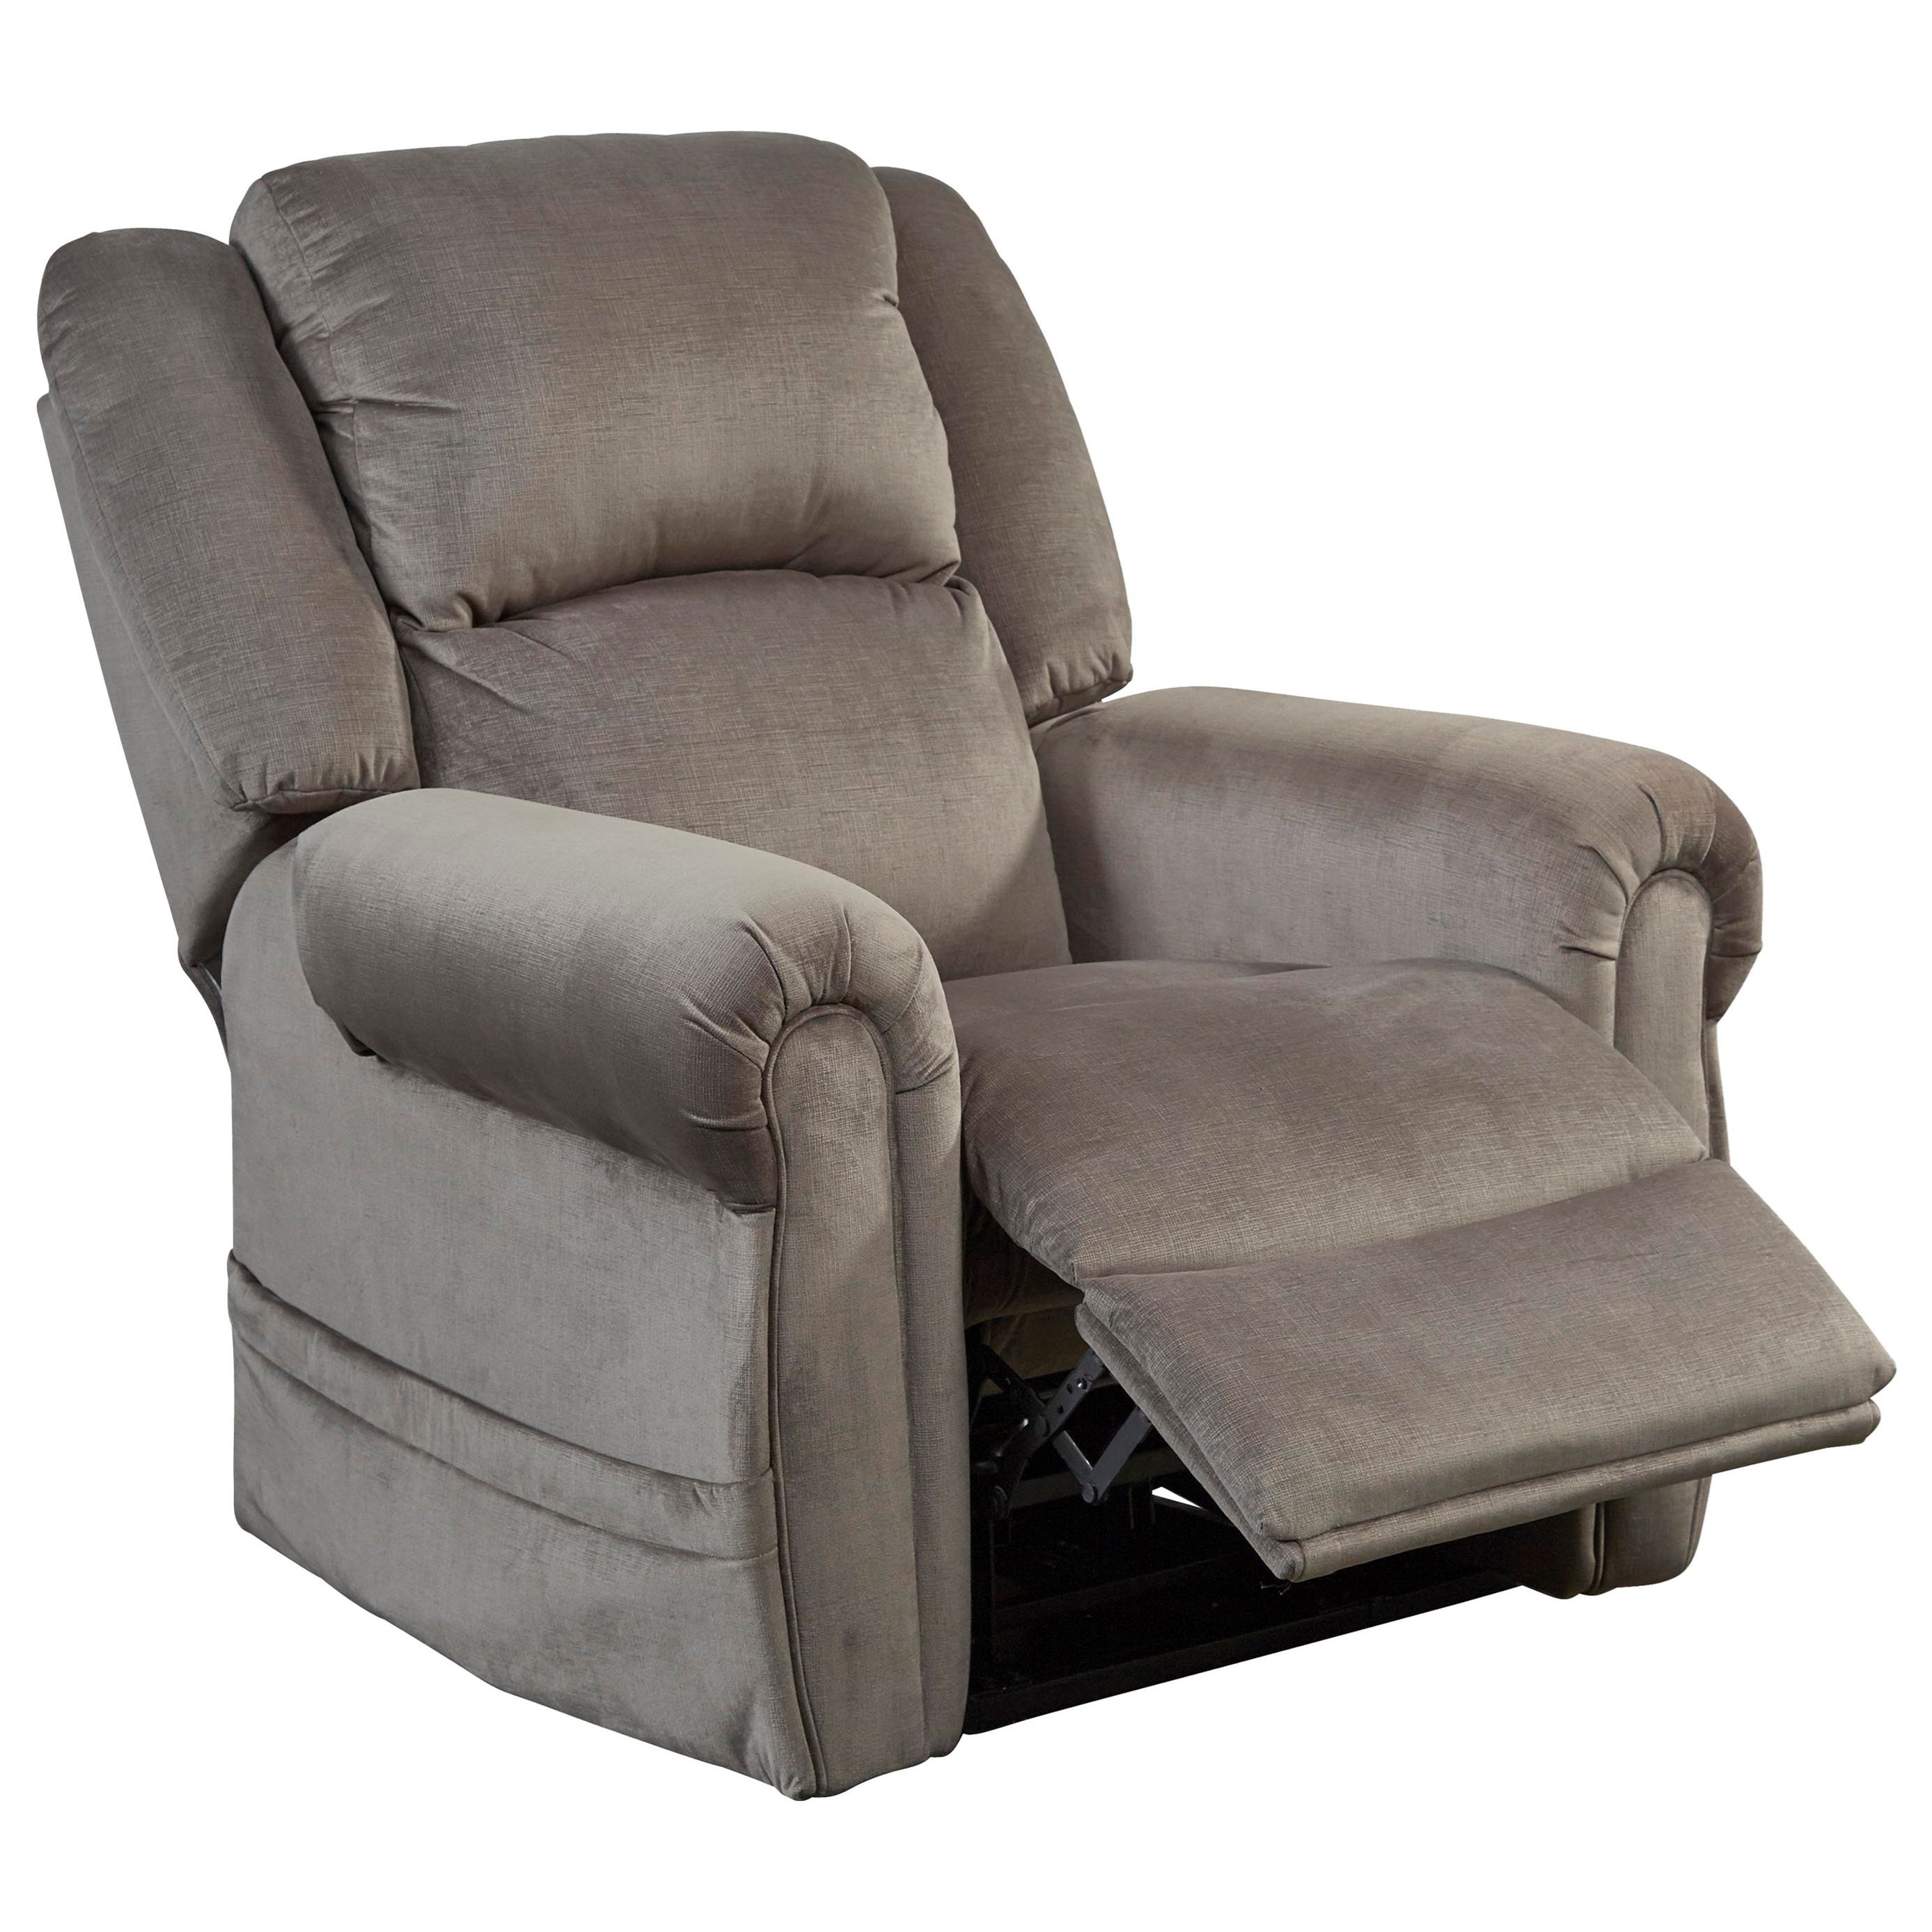 Lift Chairs Recliners Spencer Power Lift Recliner With Power Headrest By